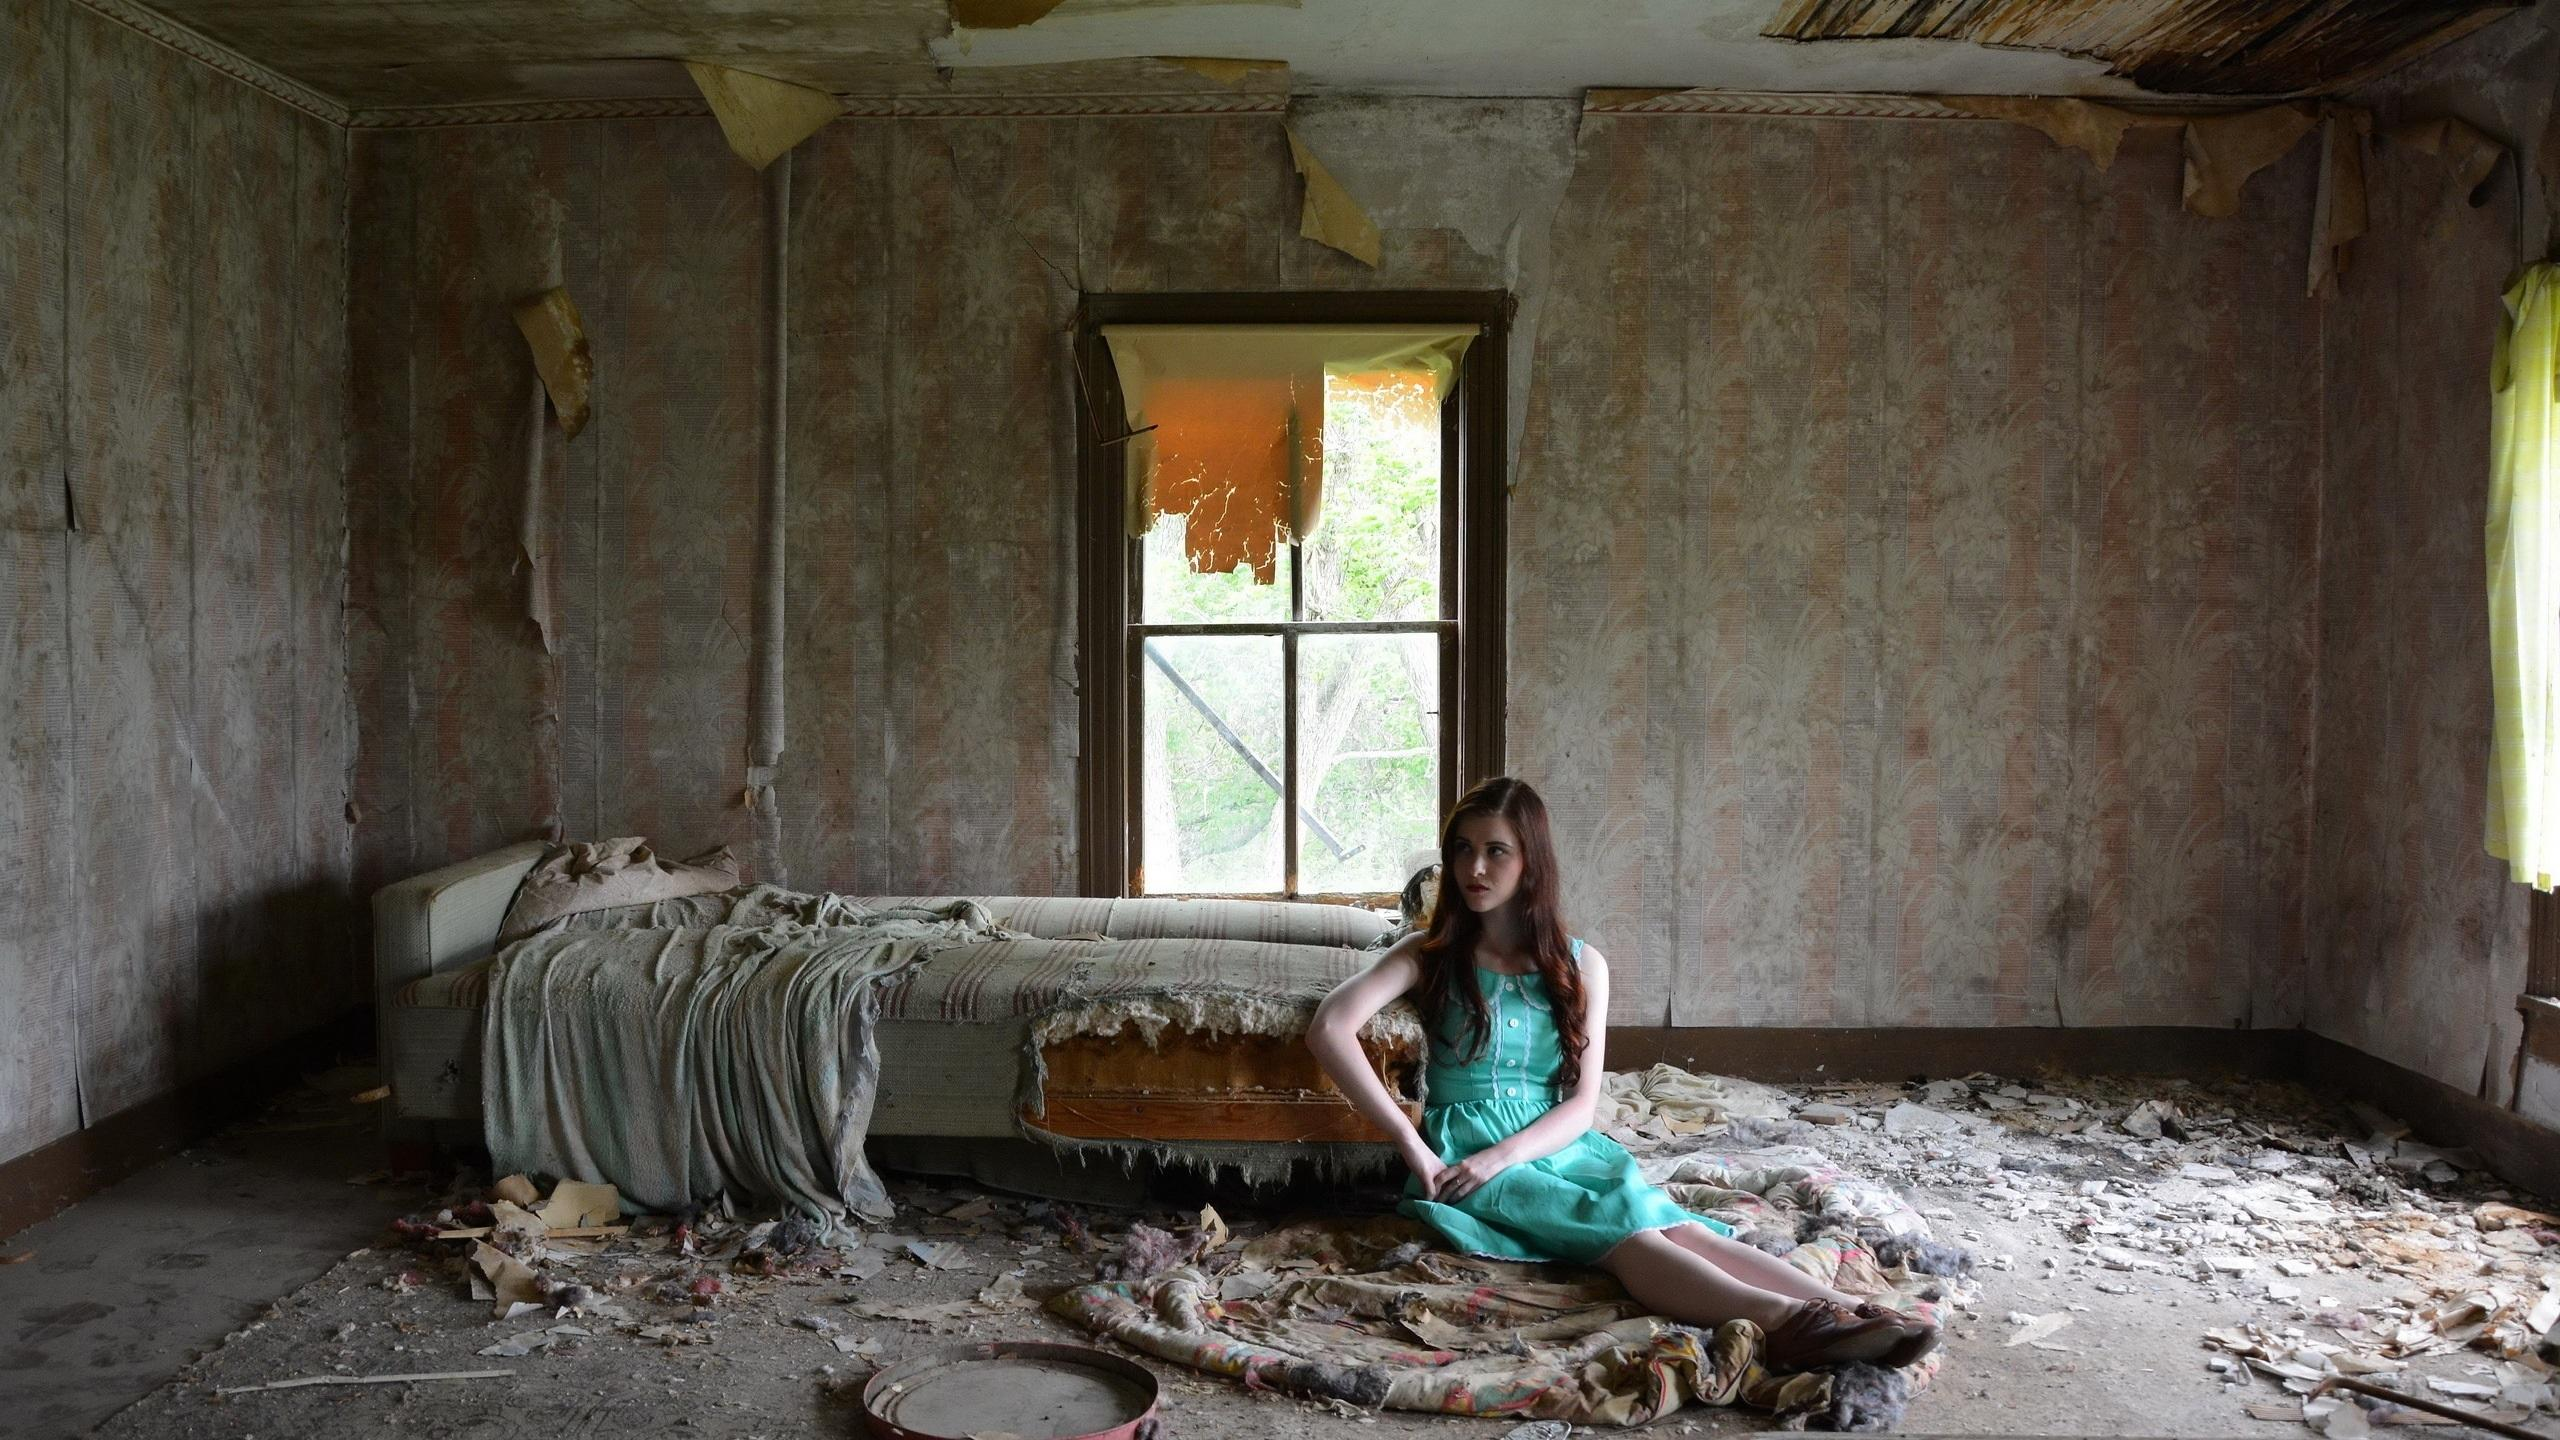 Beautiful Baby Girl Hd Wallpapers 1080p Hd Woman Sitting In The Abandoned Room Wallpaper